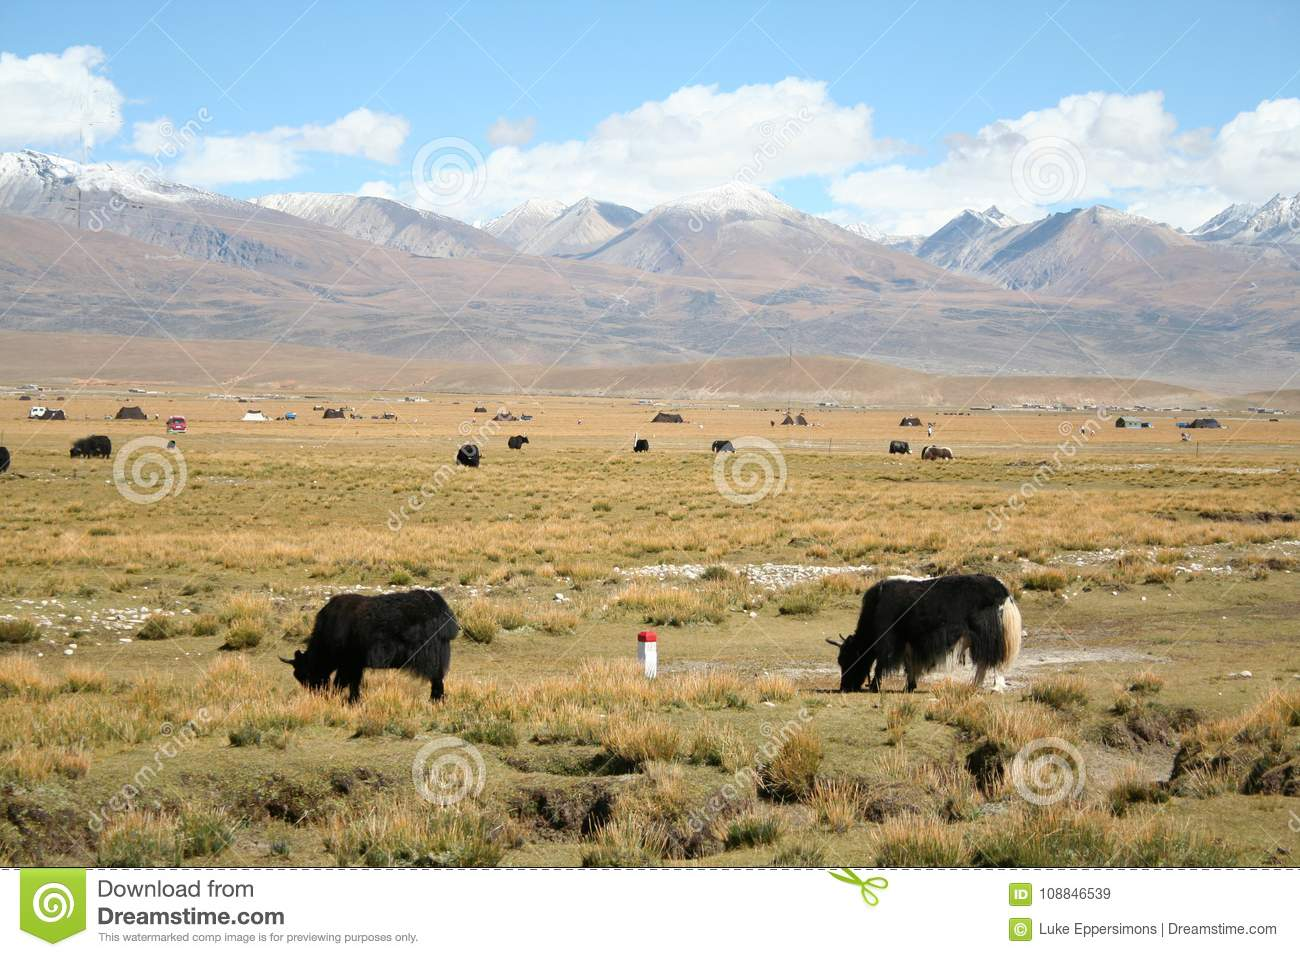 animals grazing in field with tibet mountain range in background